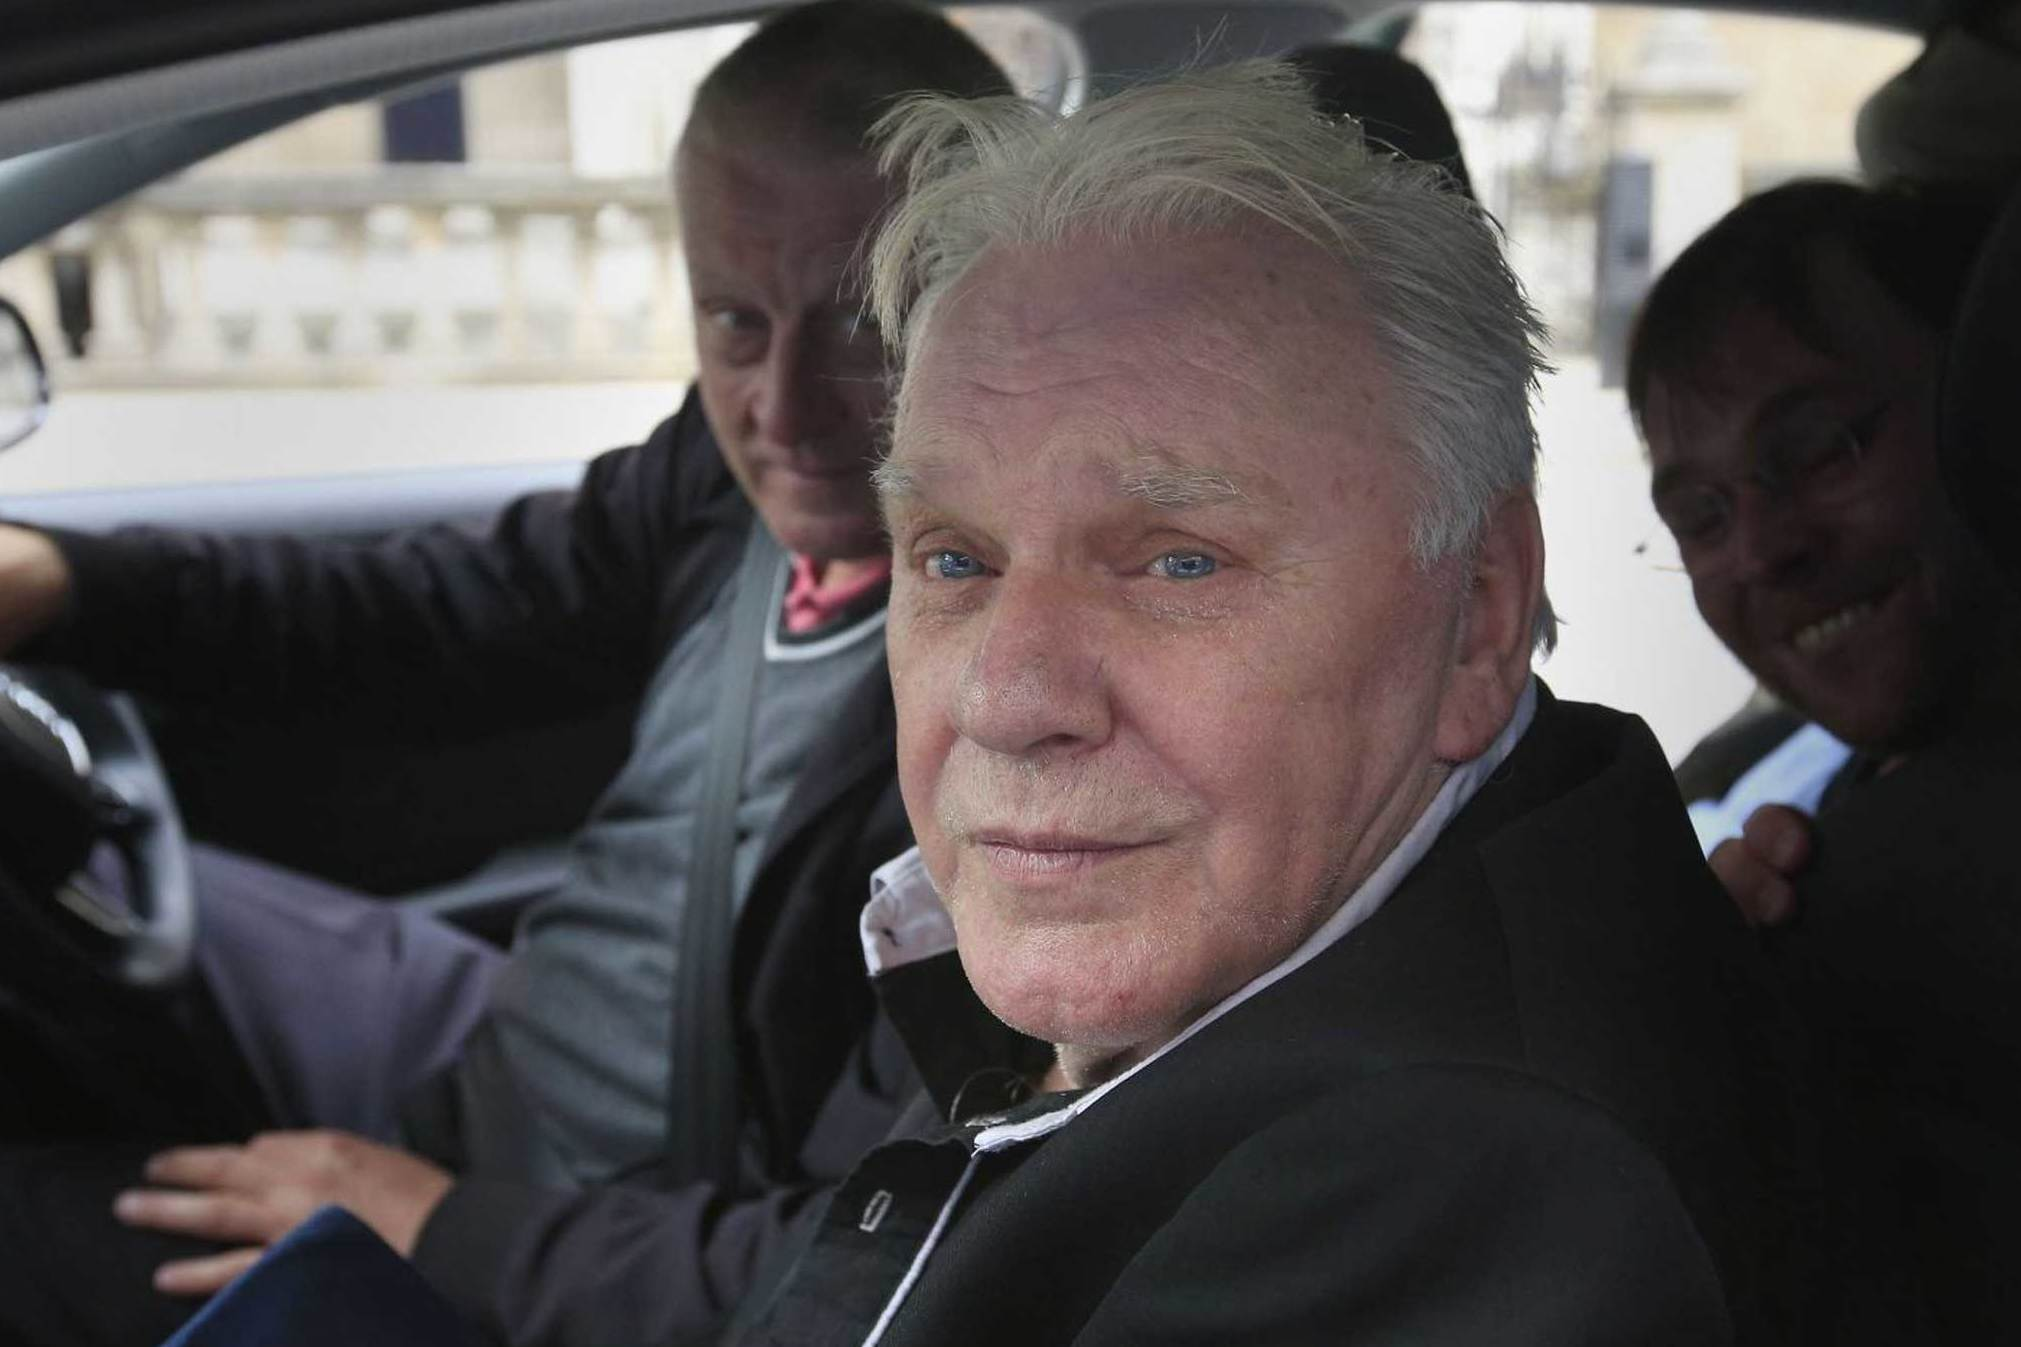 Freddie Starr death: Comedian and TV personality found dead at his home in Spain, aged 76